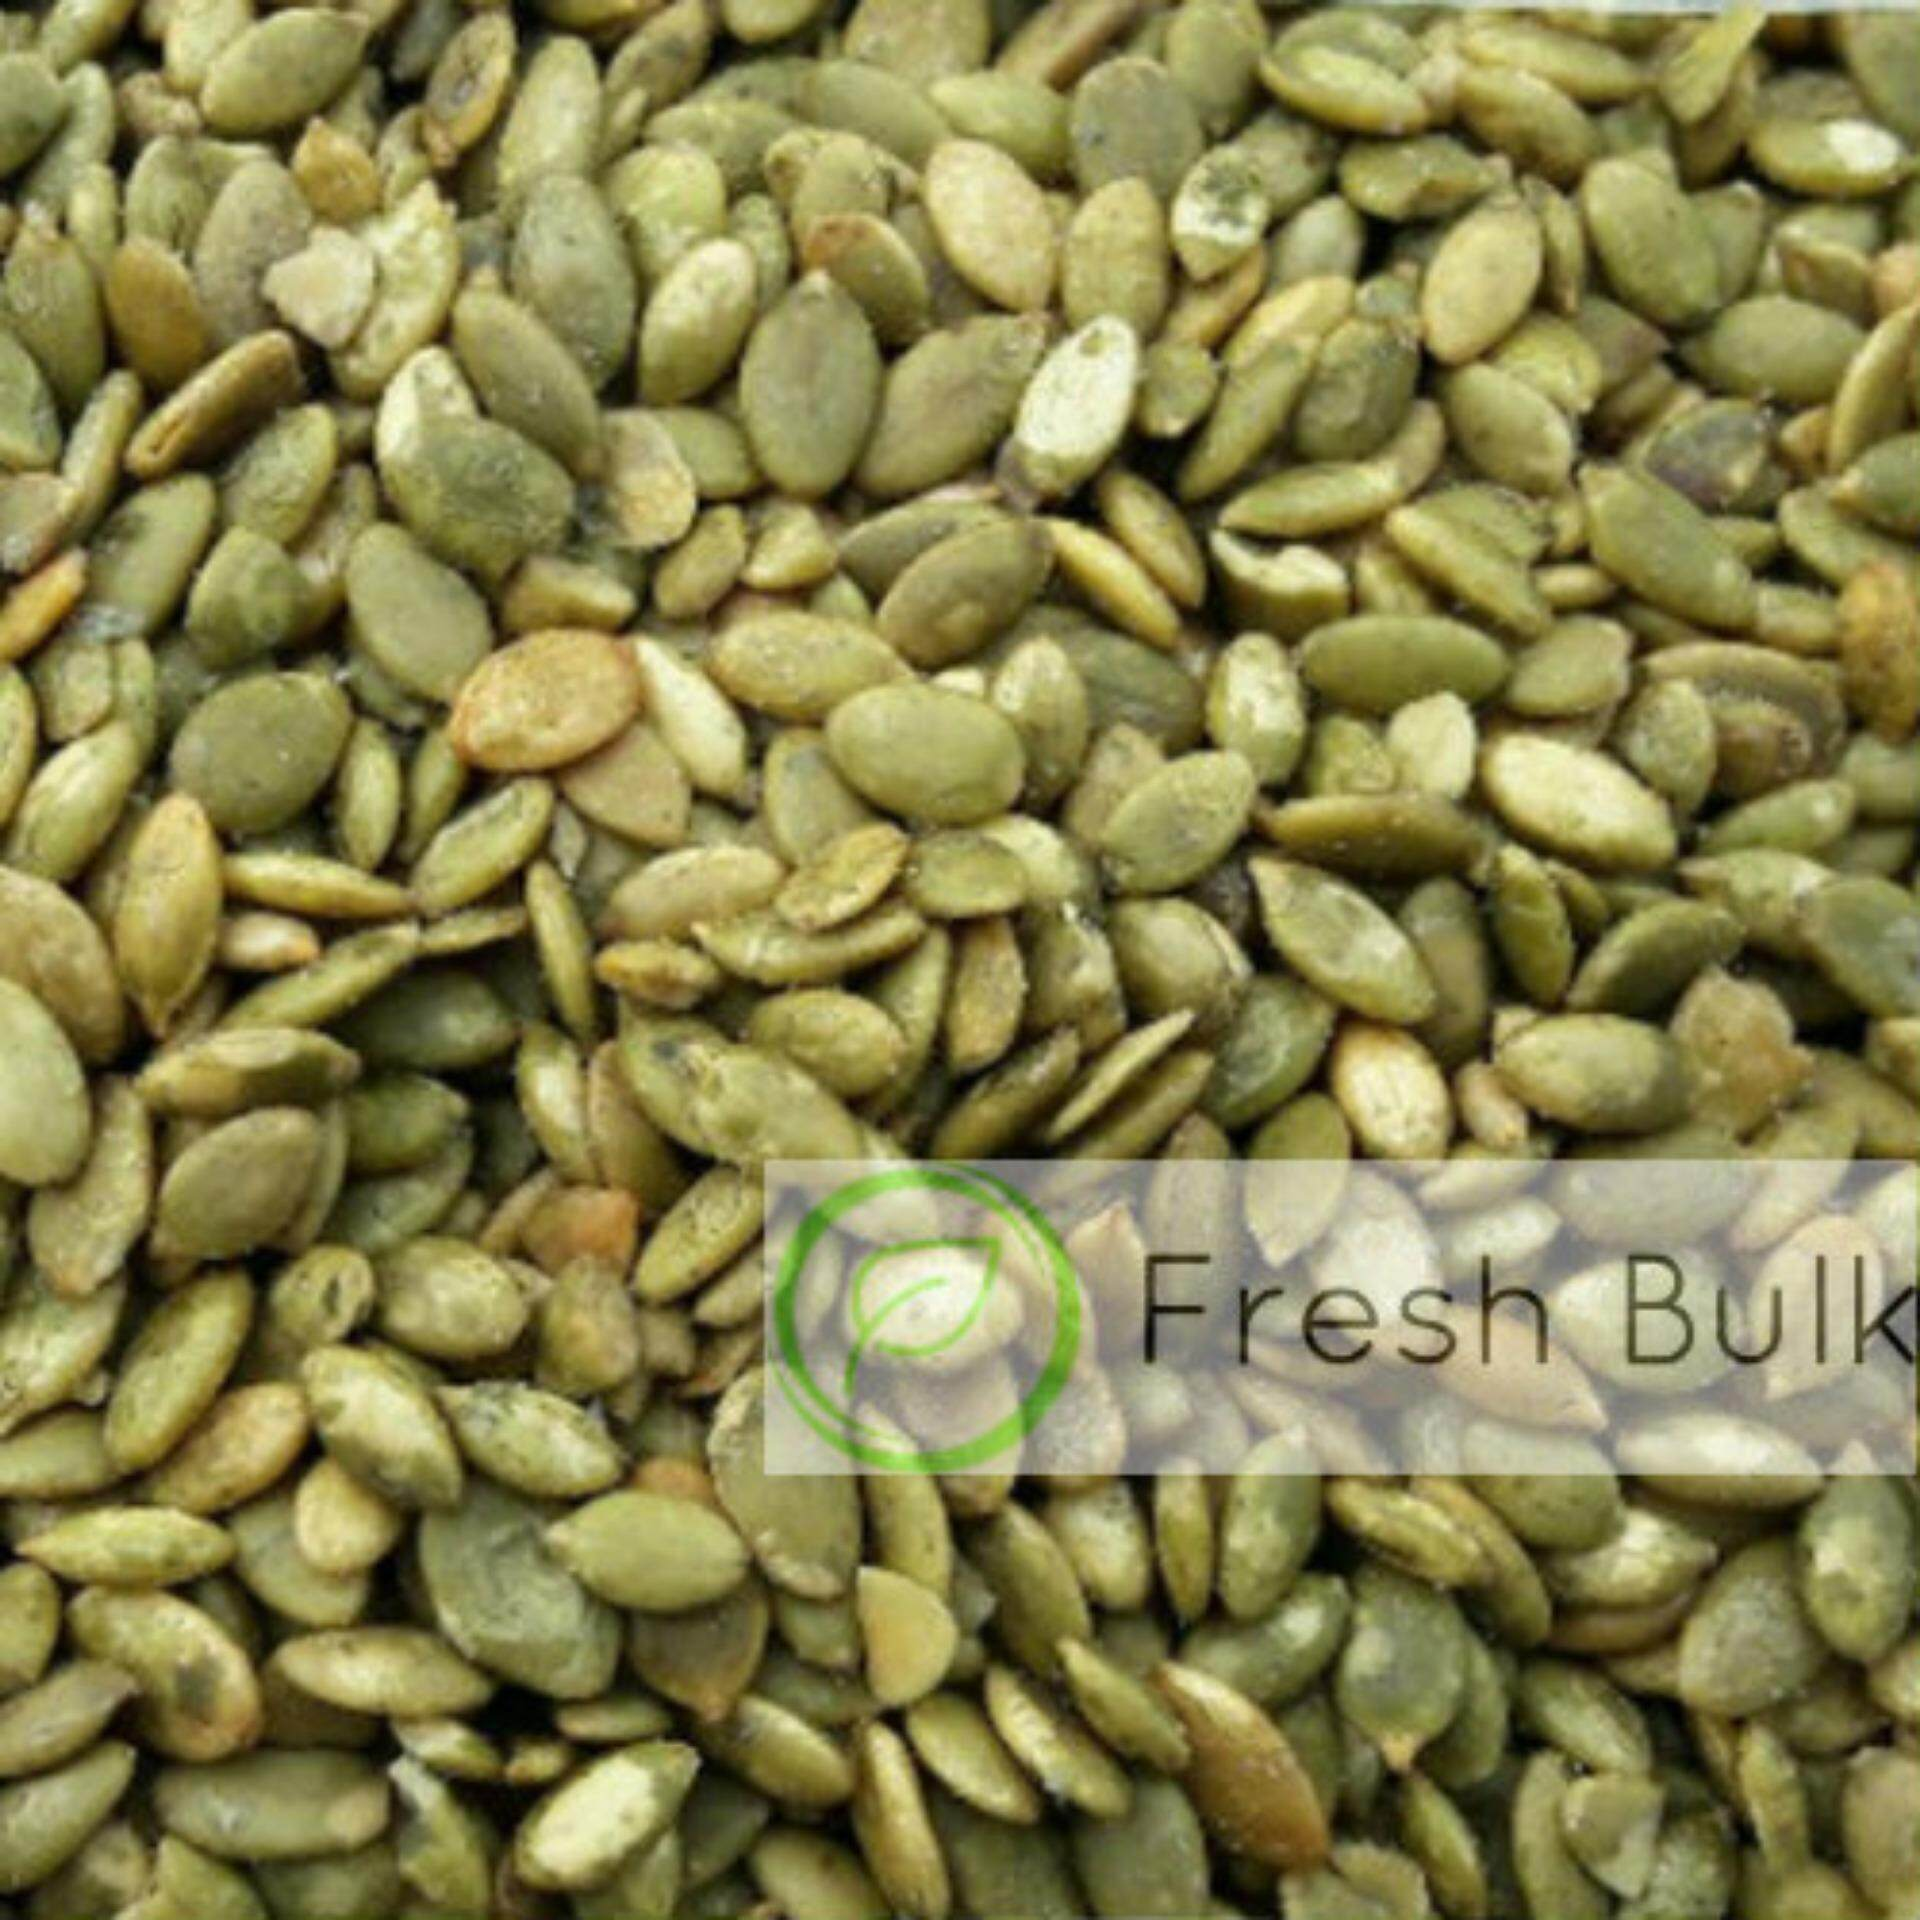 Popular Delicious Snack Nuts For The Best Prices In Malaysia Kacang Pistachio Usa California 500gr Roasted Pumpkin Seed 500g